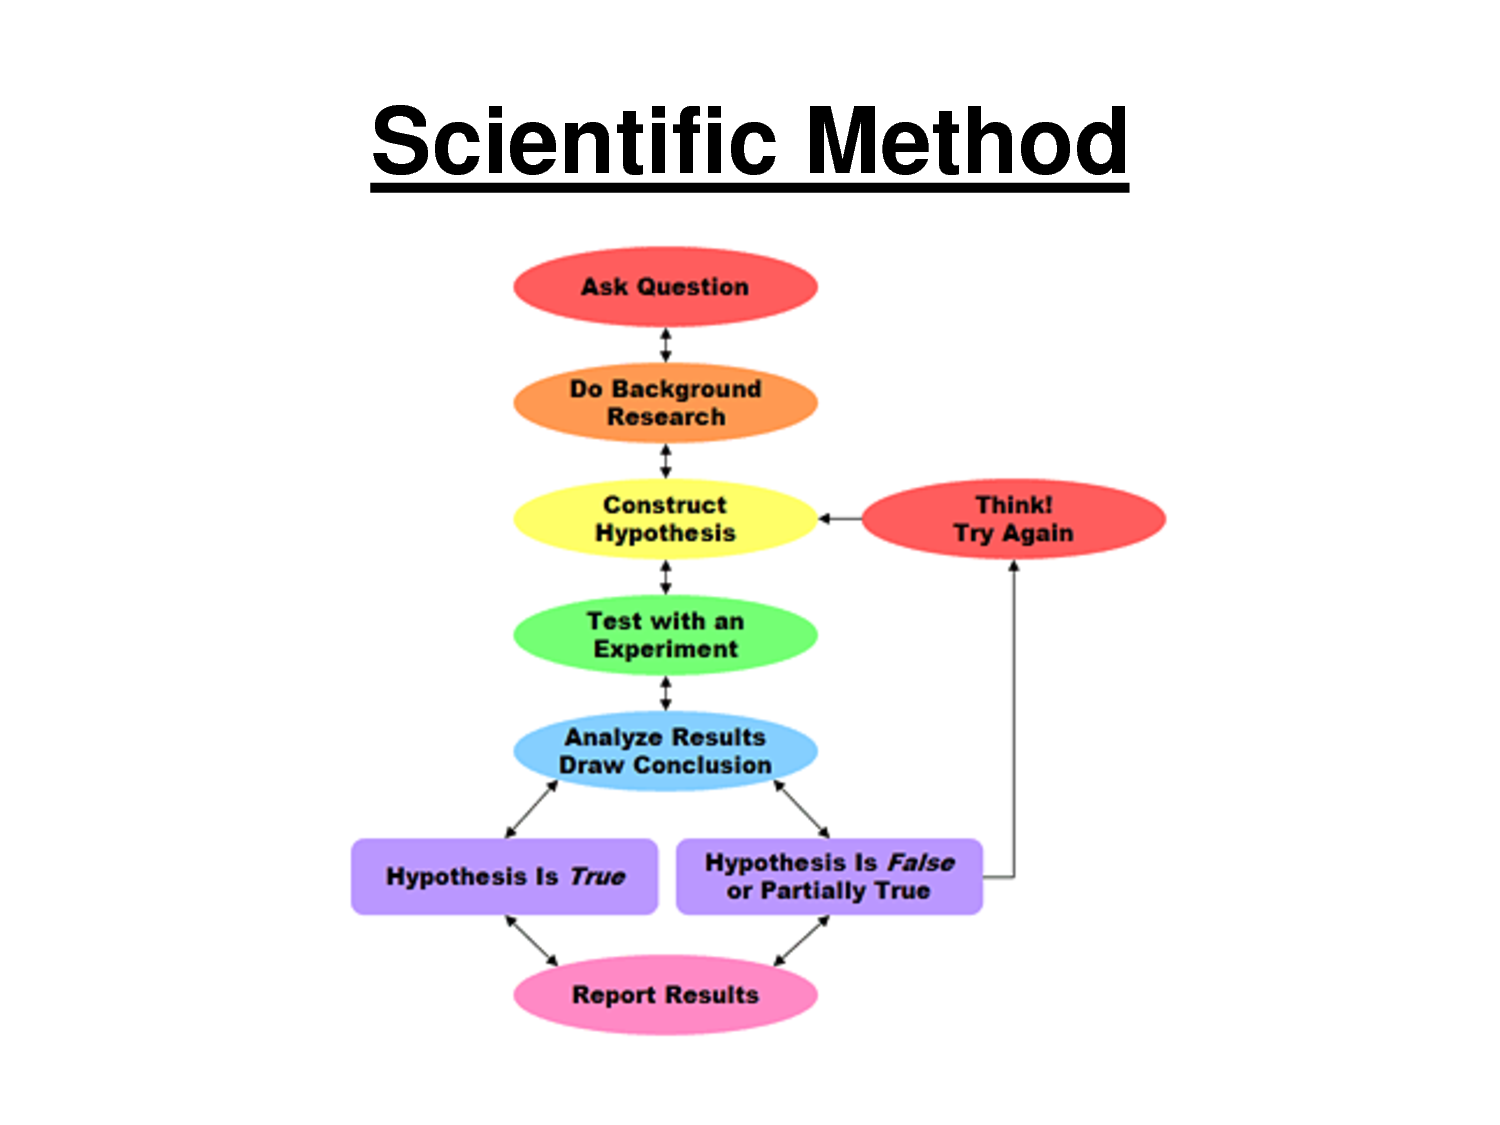 homelessness scientific method research 1 Qualitative methods provides brief descriptions of four standard qualitative research methods: participant observation, direct observation, unstructured interviews, and case studies qualitative research methods is a compendium of sites with papers, links, etc to qualitative research methods.